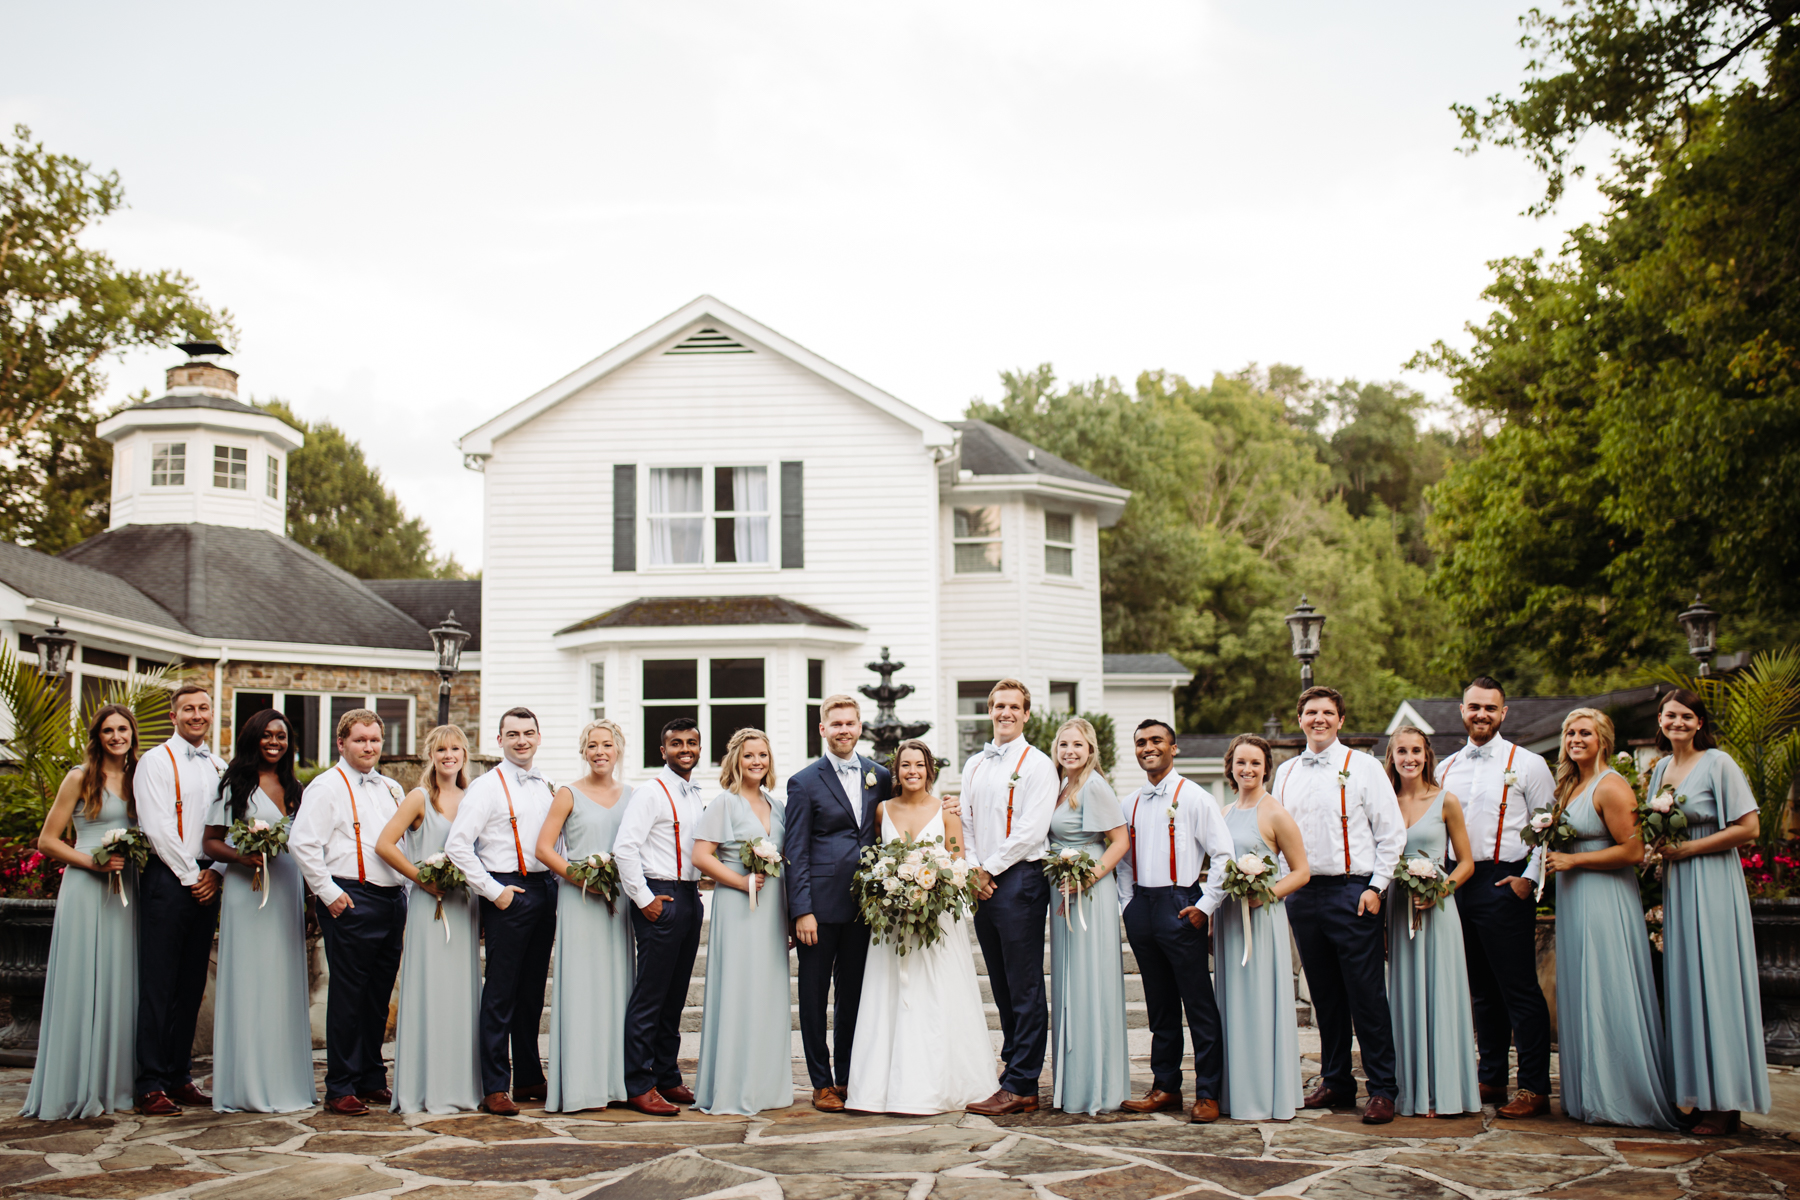 Full bridal party photos at a Sunny summer wedding at Dara's Garden in Knoxville, Tennessee